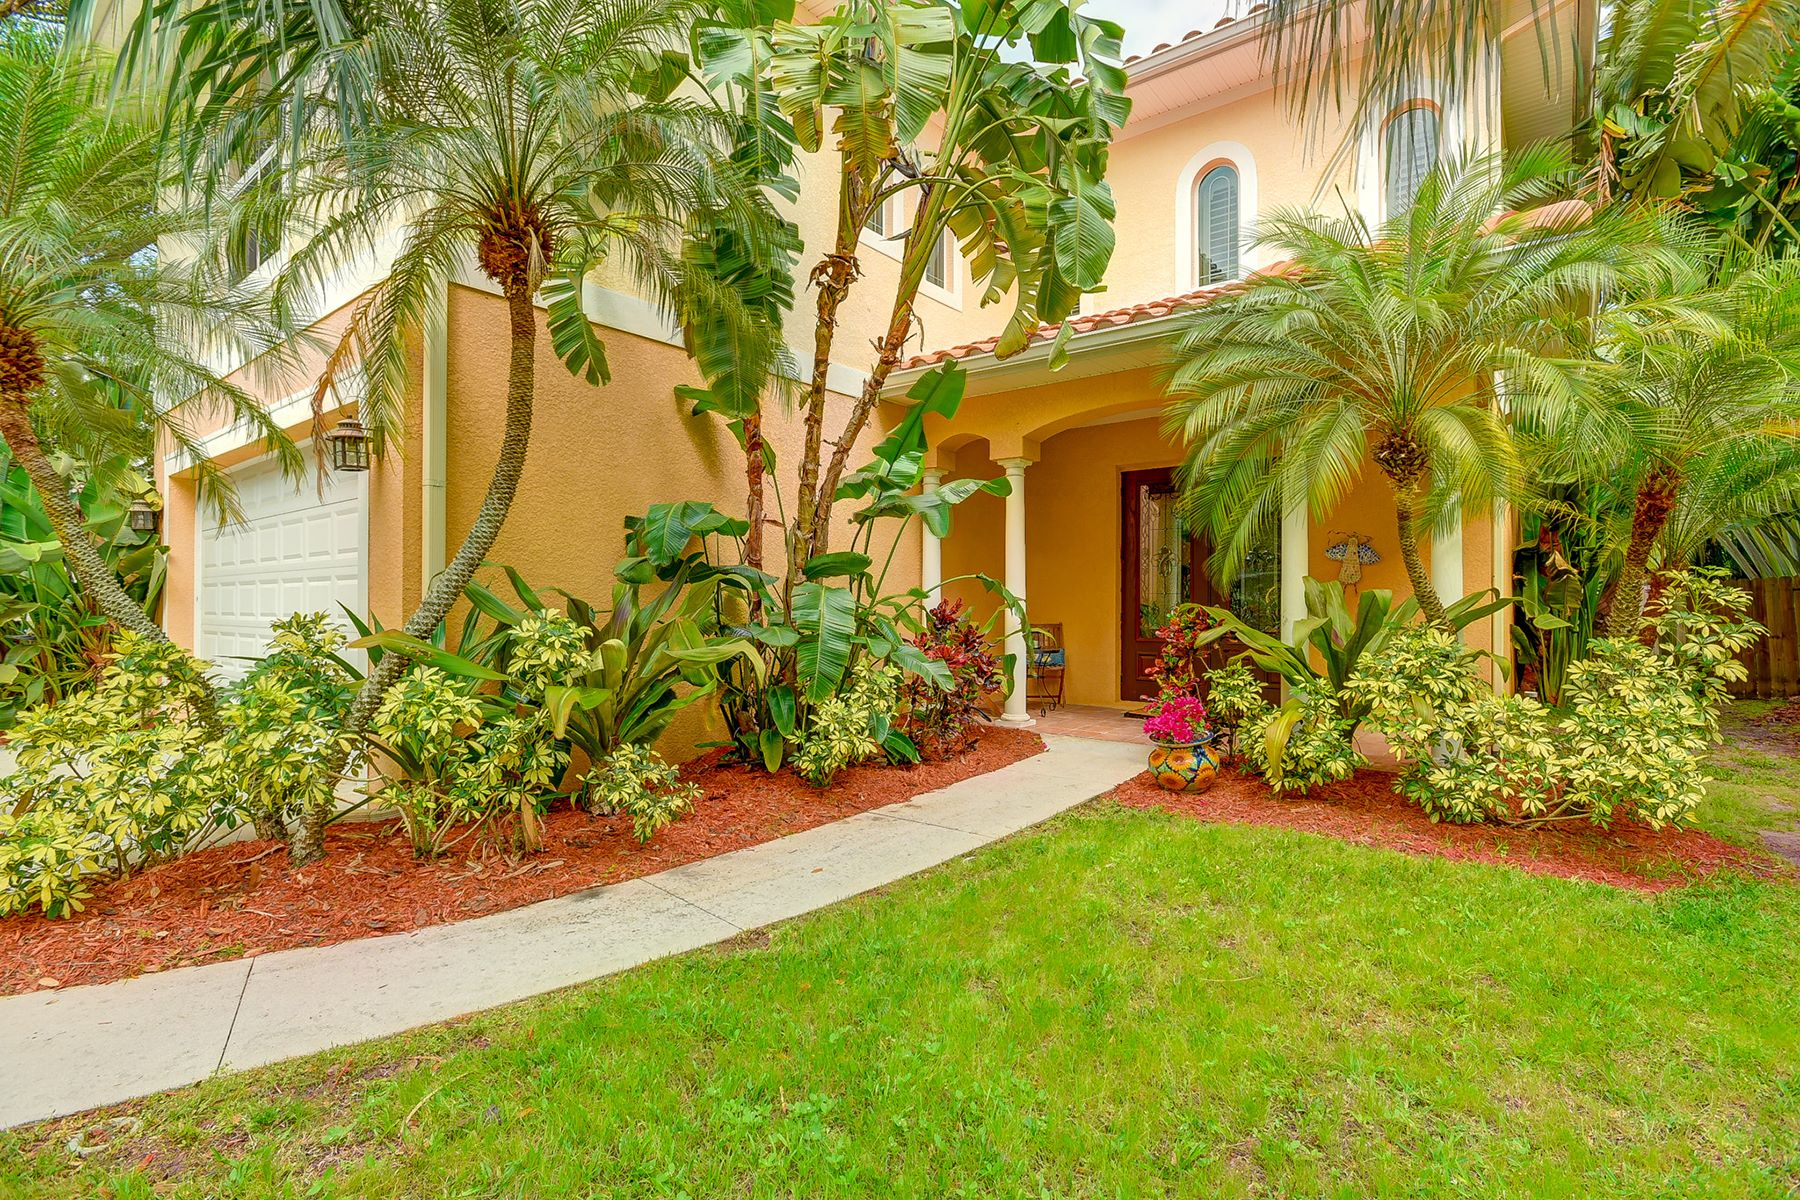 Single Family Home for Sale at SOUTH TAMPA 2823 W Thornton Ave Tampa, Florida, 33611 United States